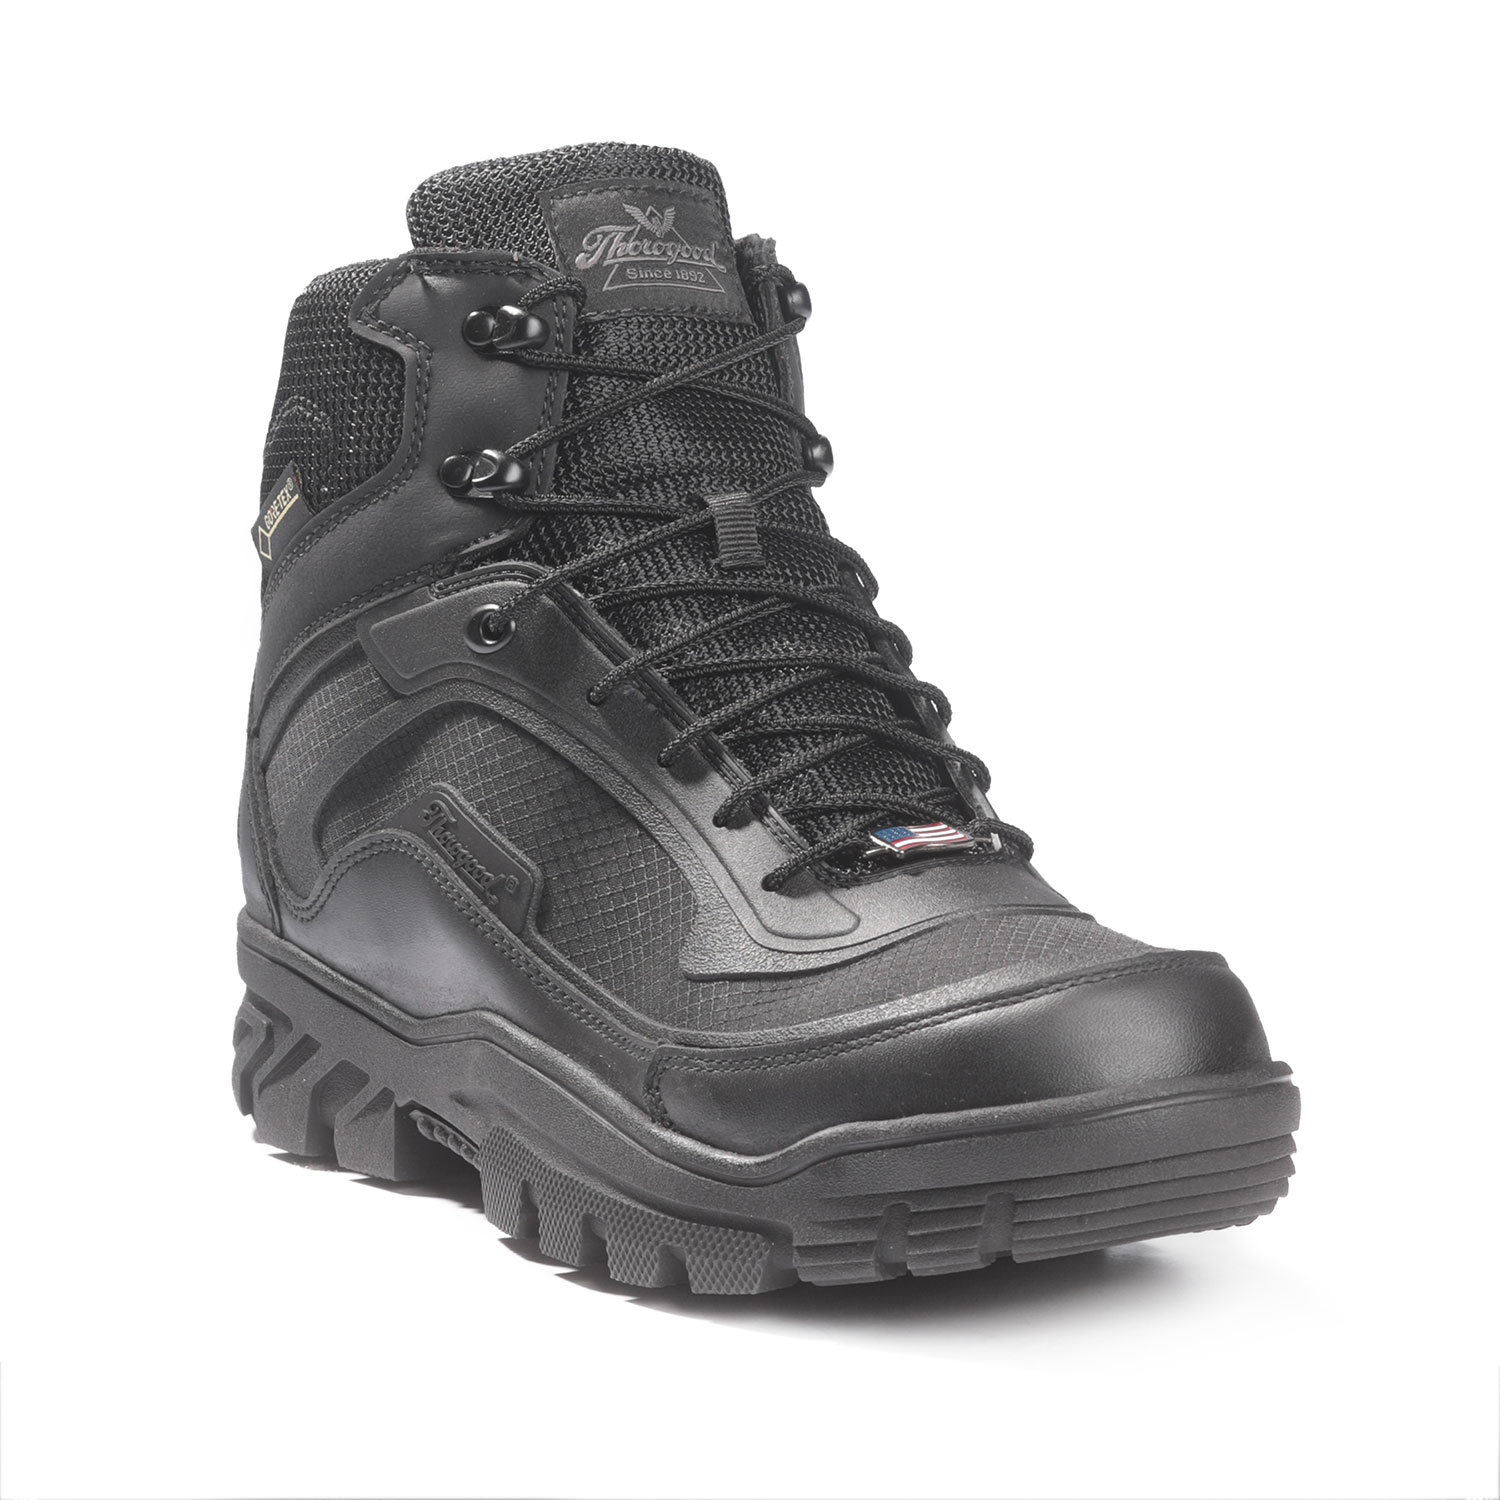 "Thorogood Veracity GTX 5.5"" Tactical Quarterboot"